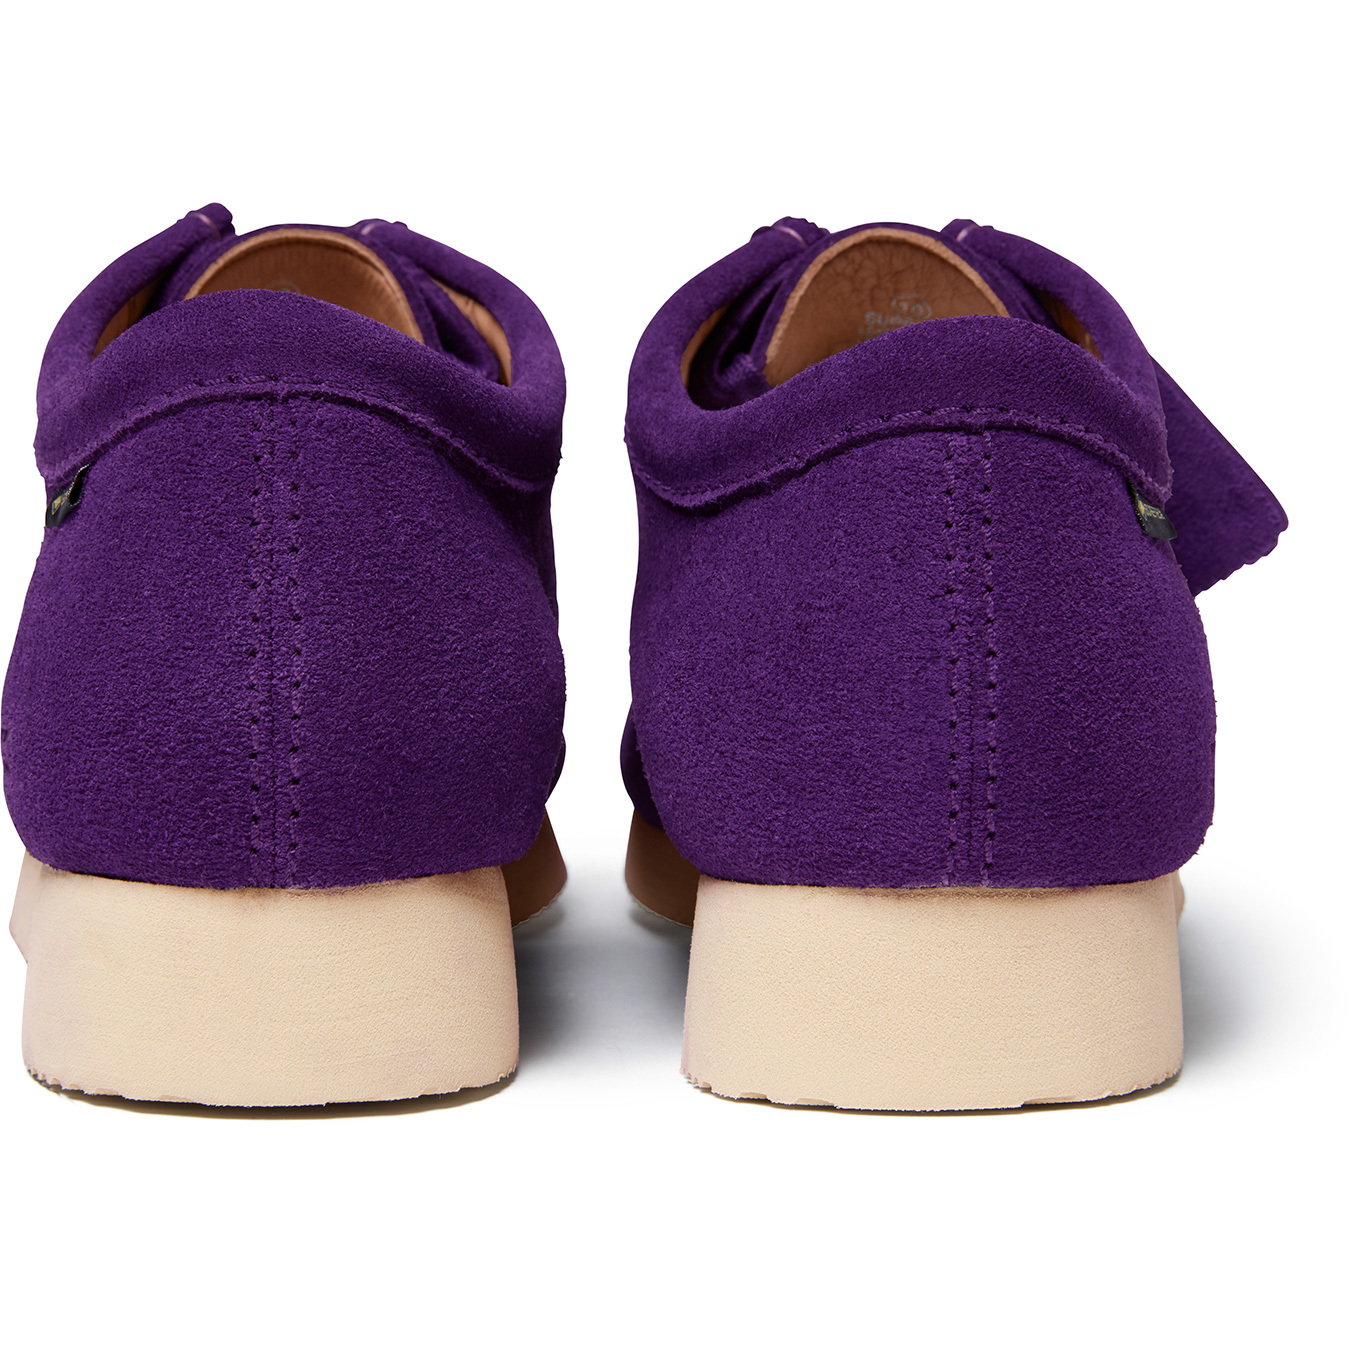 supreme-clarks-gore-tex-wallabee-19aw-19fw-collaboration-release-20191026-week9-gore-tex-wallabee